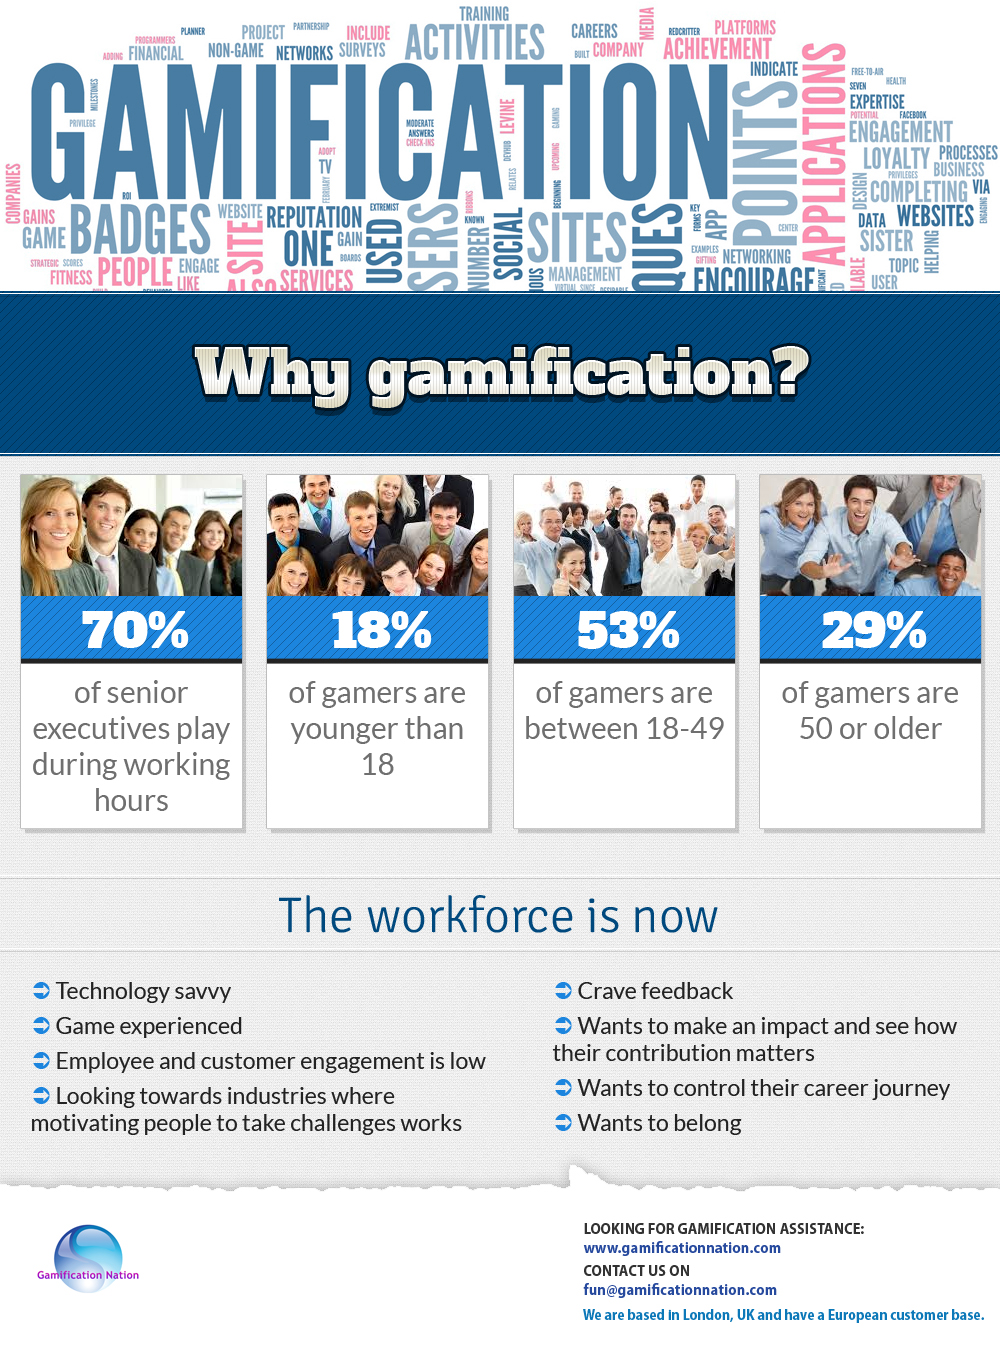 https://www.gamificationnation.com why gamification now